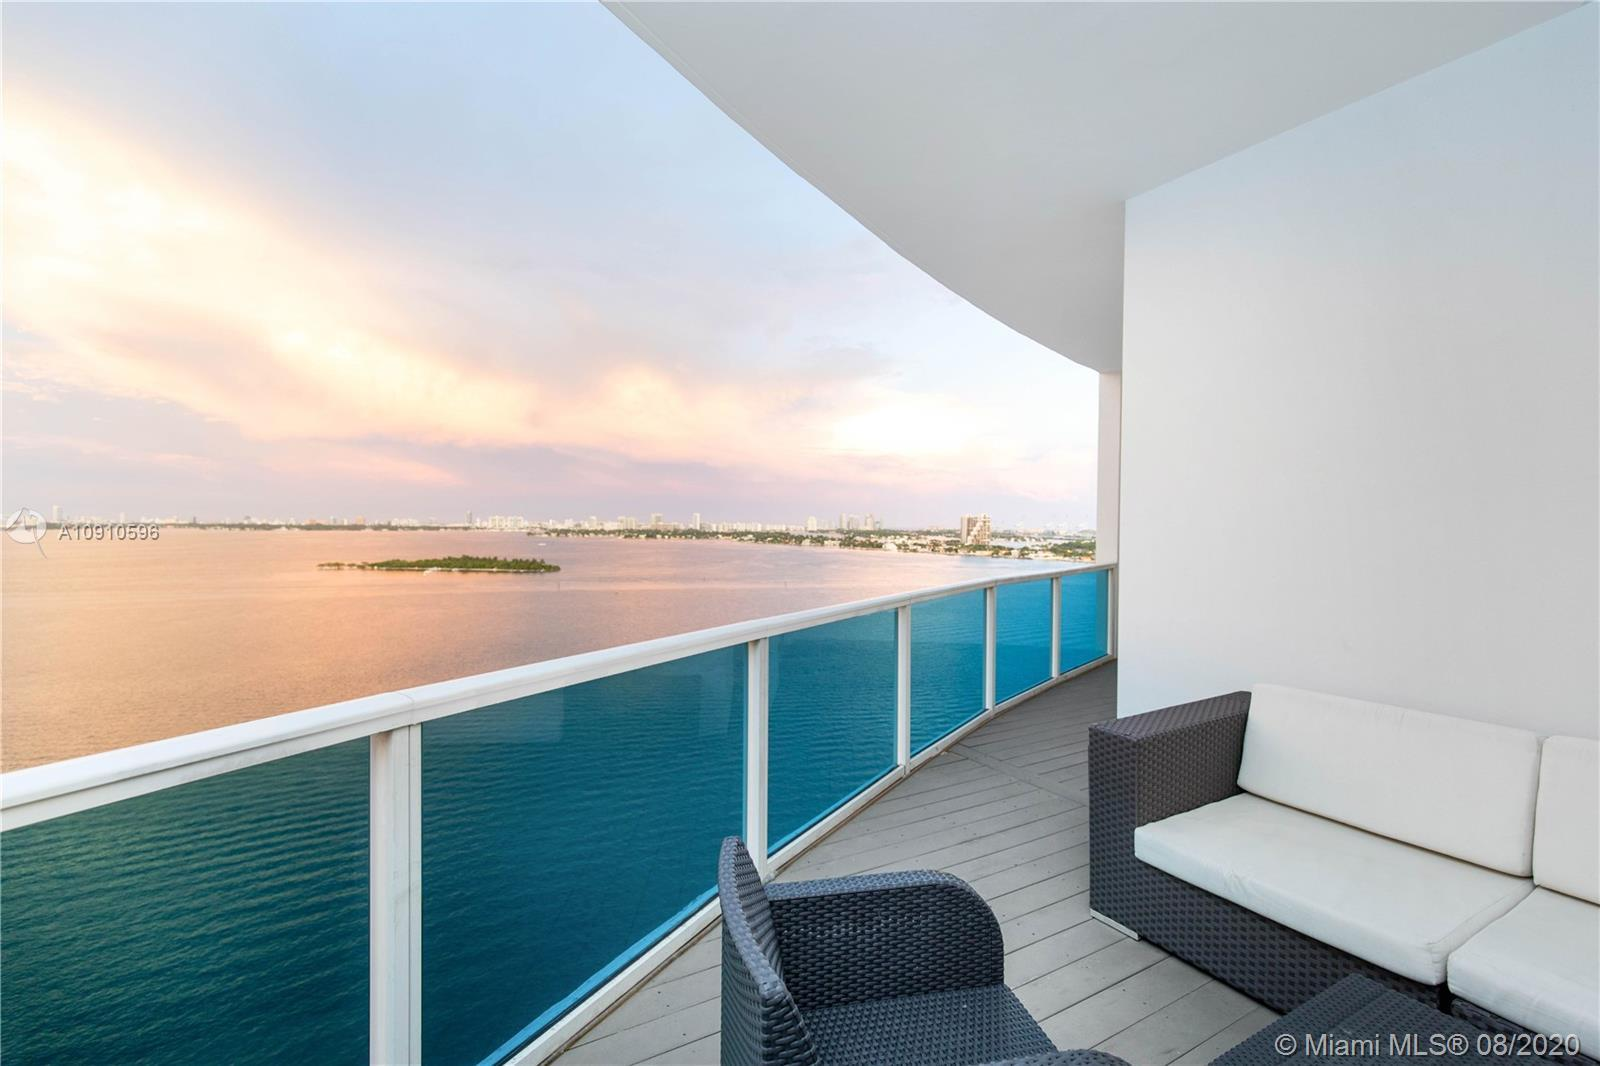 Spectacular 2 bed plus den, amazing water and sunset views! Sale includes cabana #3 (Perfect home of